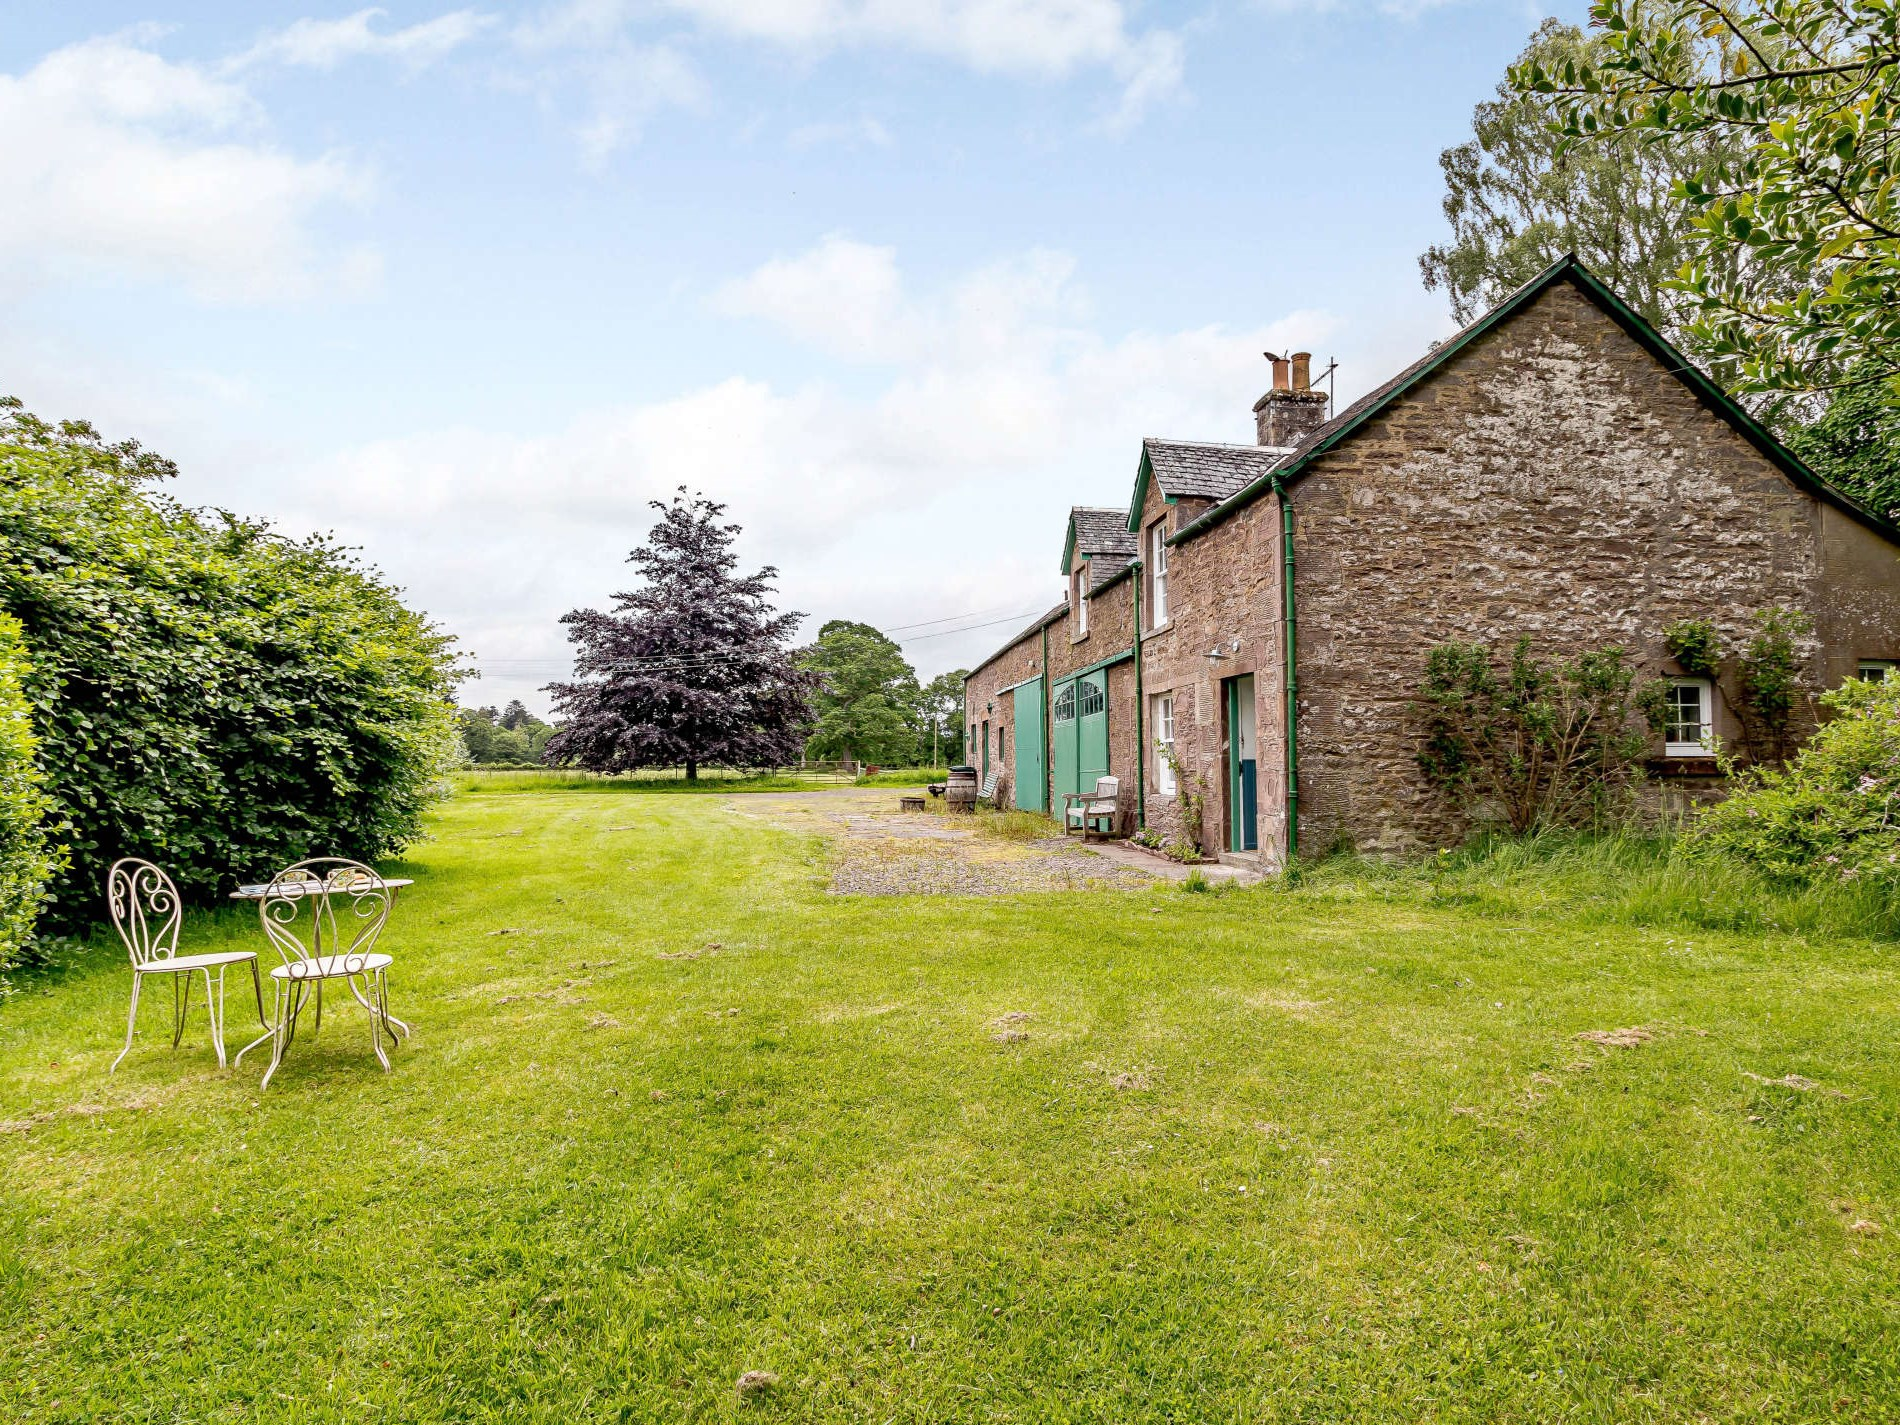 1 Bedroom Cottage in Crieff, Perthshire, Angus and Fife